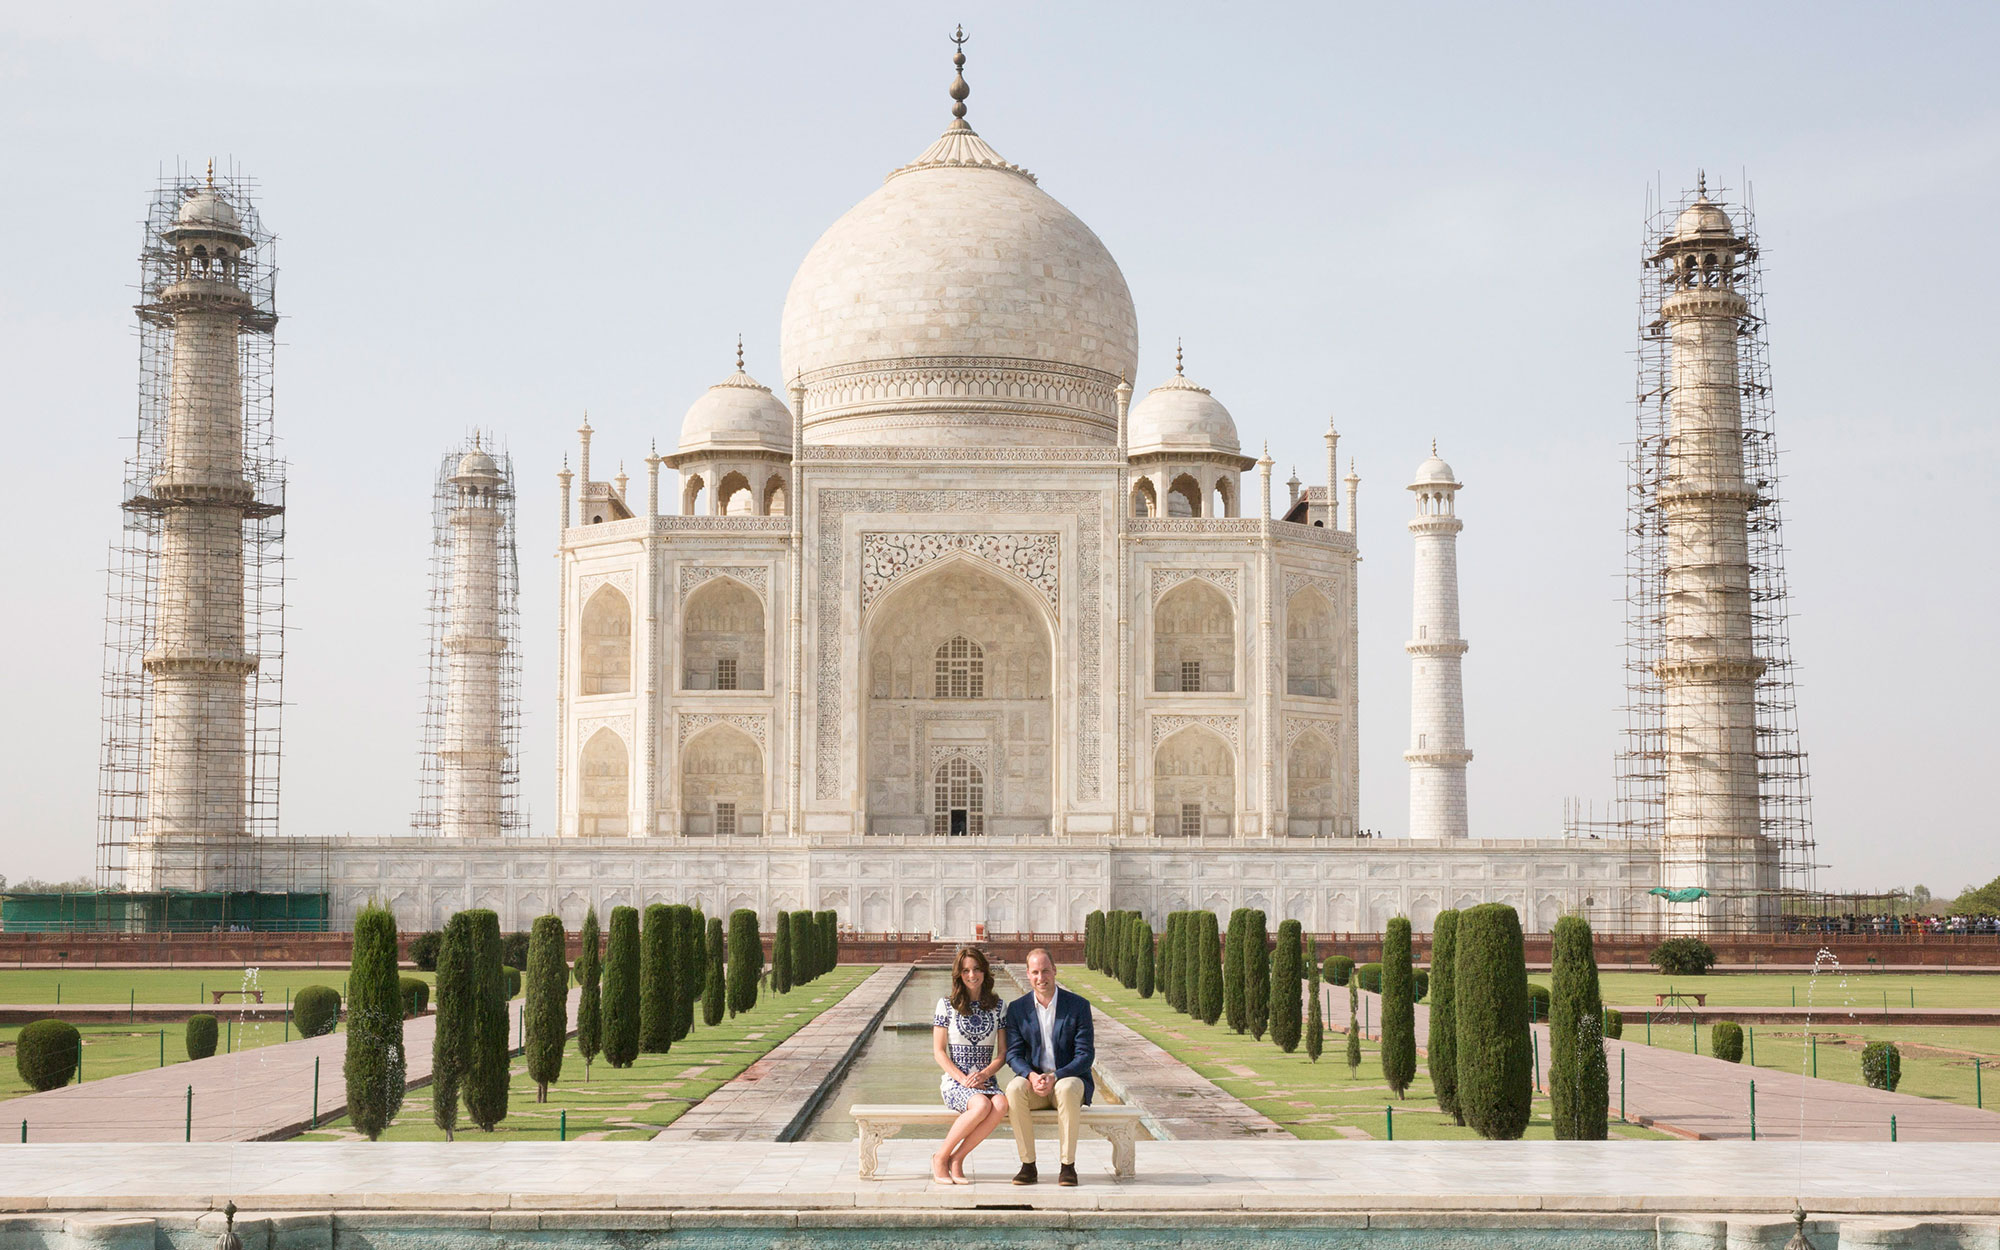 The Duke and Duchess of Cambridge in front of the Taj Mahal in India during day seven of the Royal tour to India and Bhutan. PRESS ASSOCIATION Photo. Picture date: Saturday April 16, 2016. See PA story ROYAL India. Photo credit should read: Ian Vogler/Dai